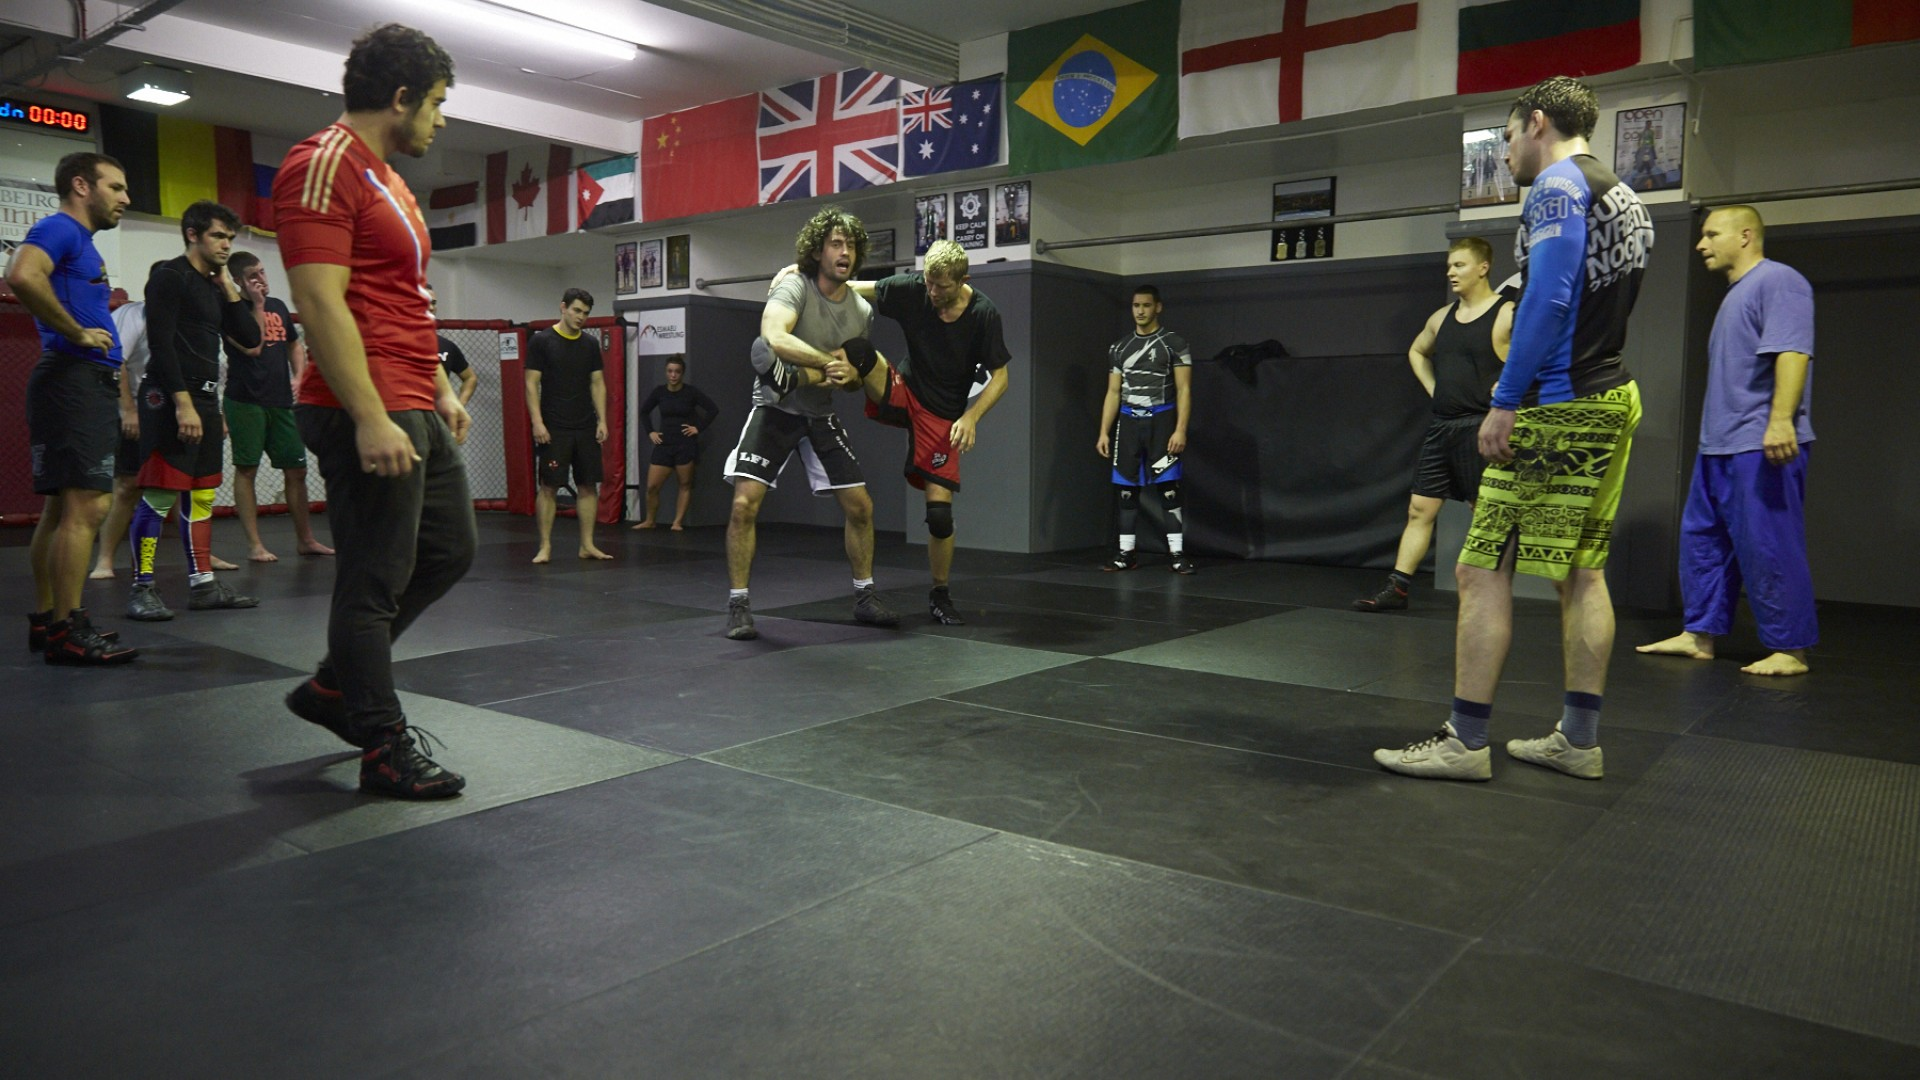 MMA Fighters training at London Fight Factory